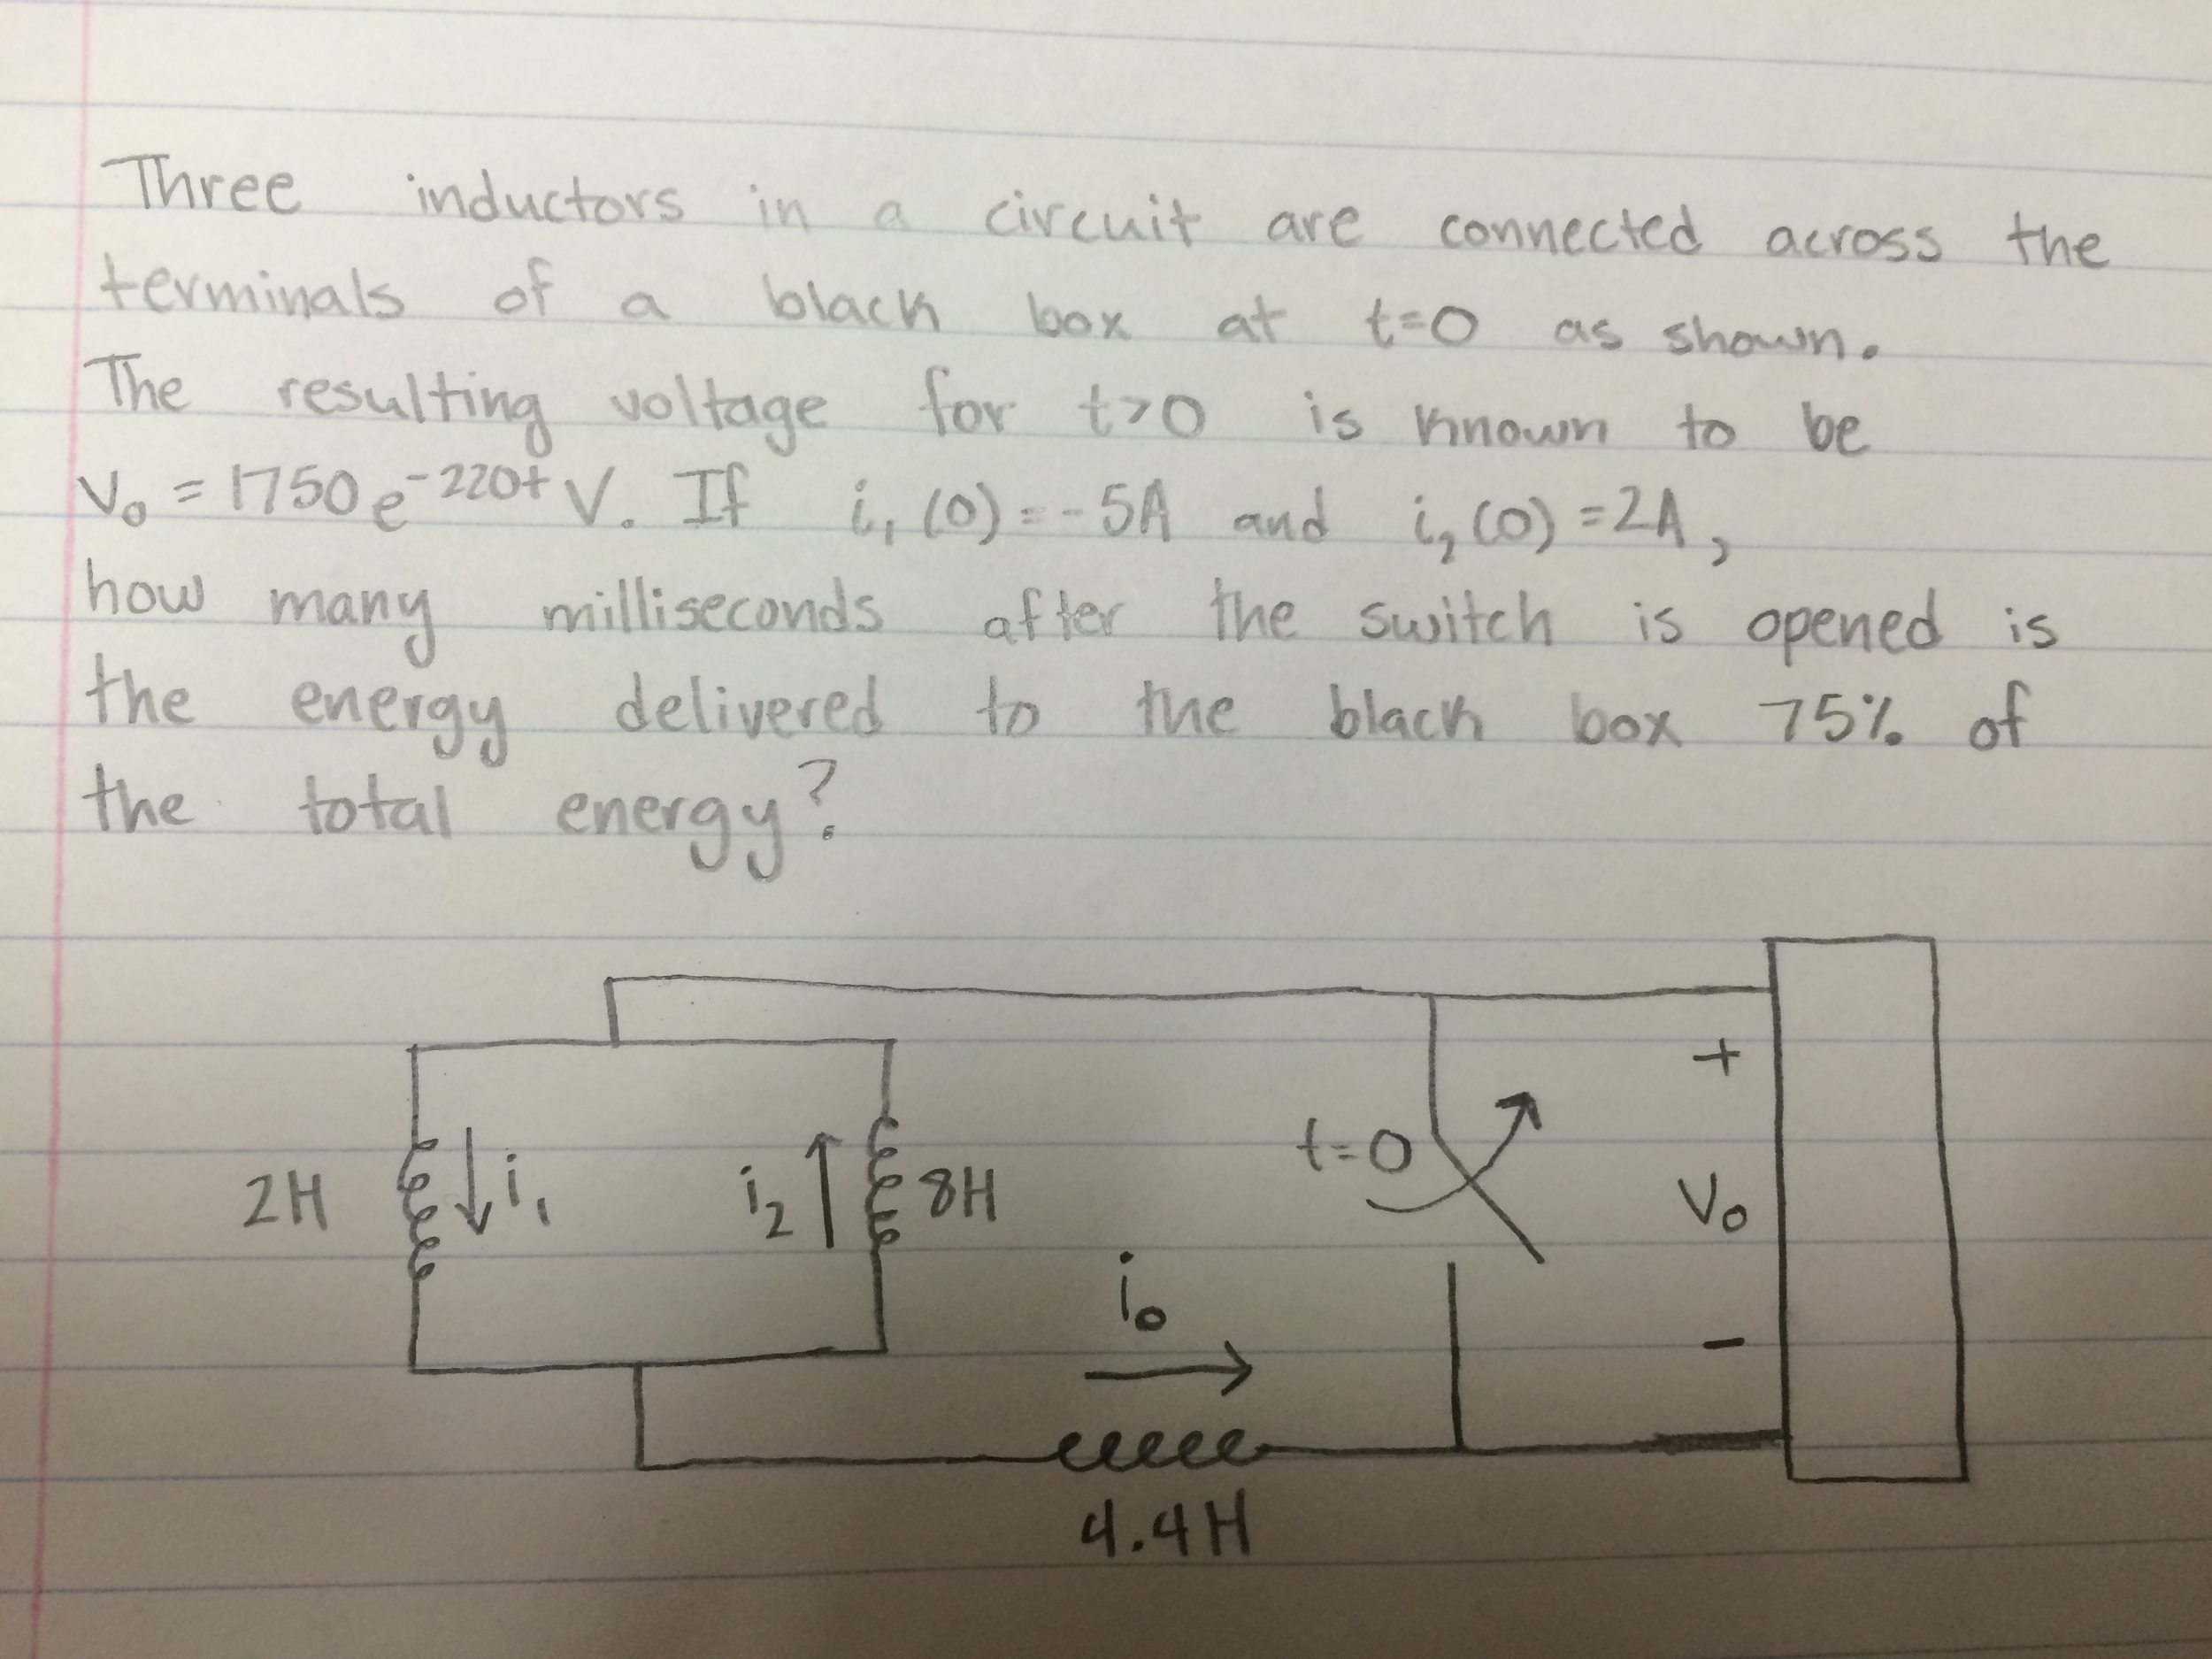 Solved: Three Inductors In A Circuit Are Connected Across ...